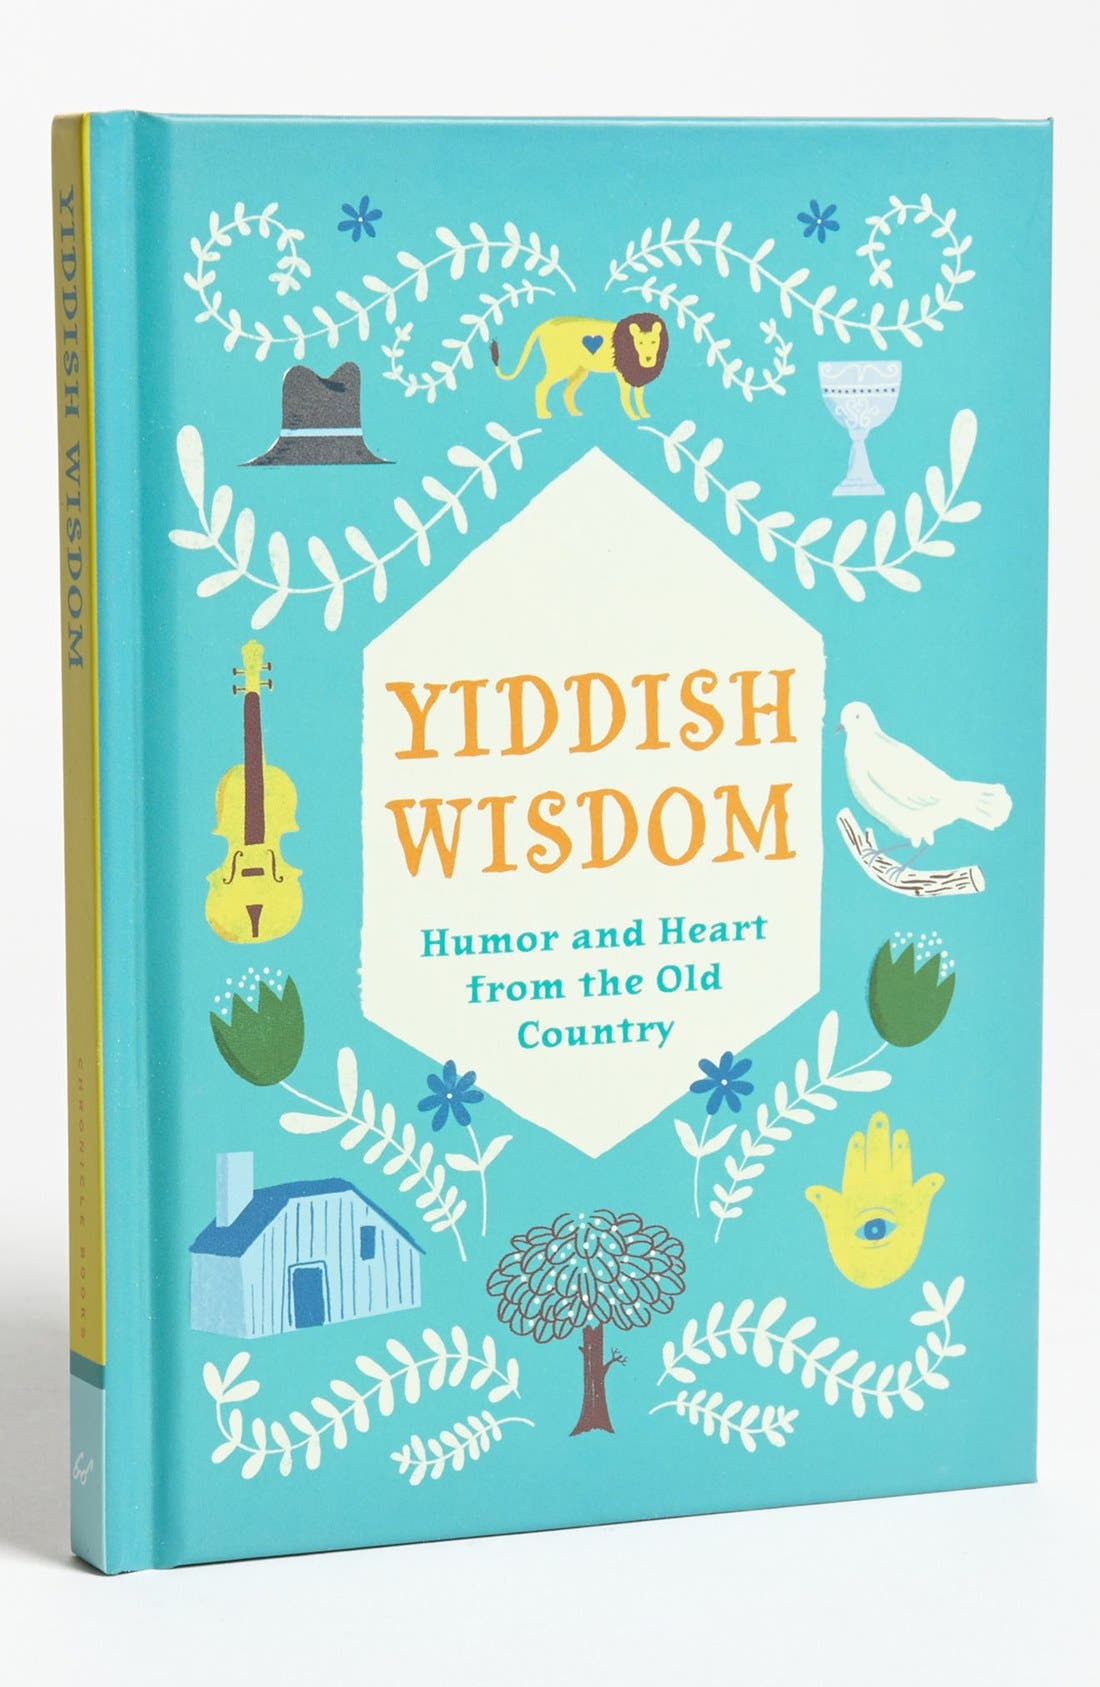 Alternate Image 1 Selected - 'Yiddish Wisdom: Humor & Heart from the Old Country' Quotations Book